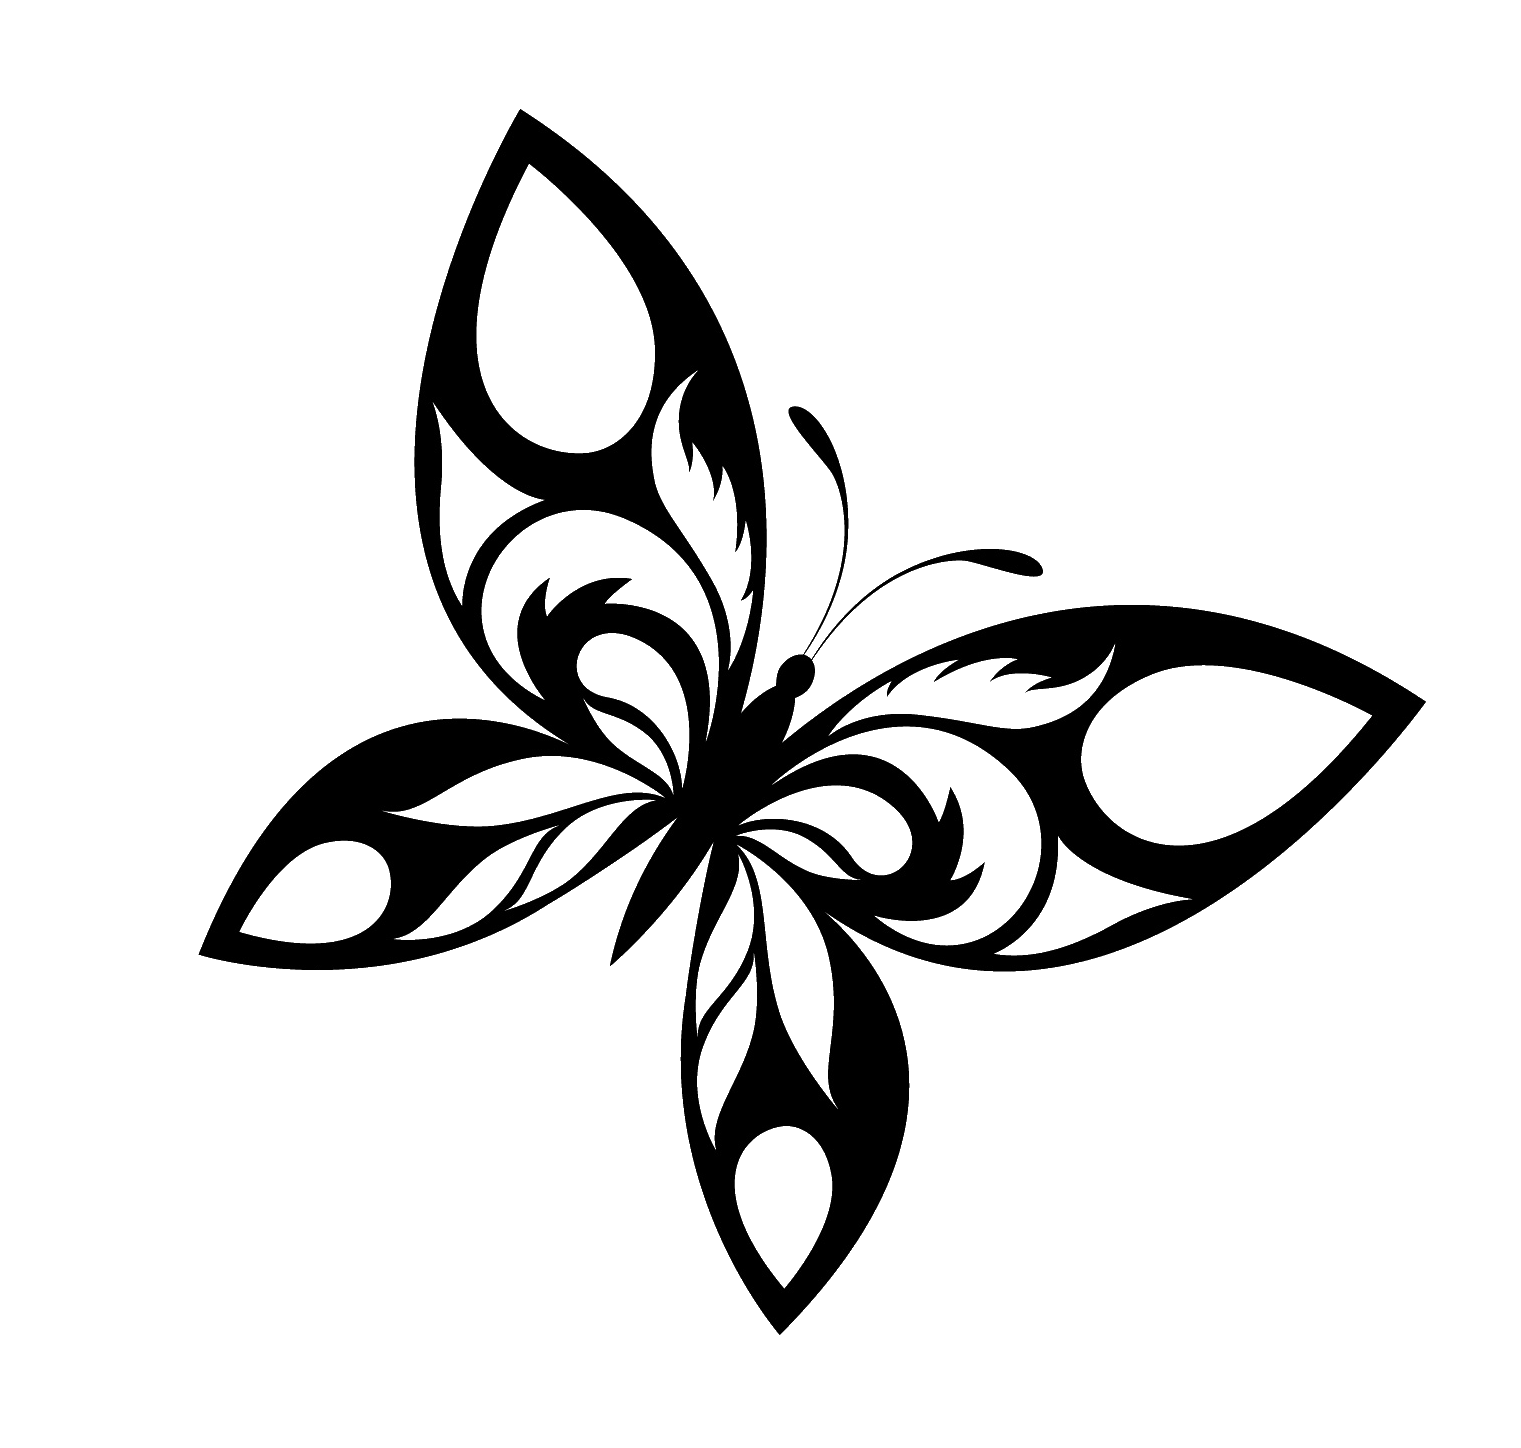 Tattoo Designs White Background: Tattoos Transparent PNG Pictures